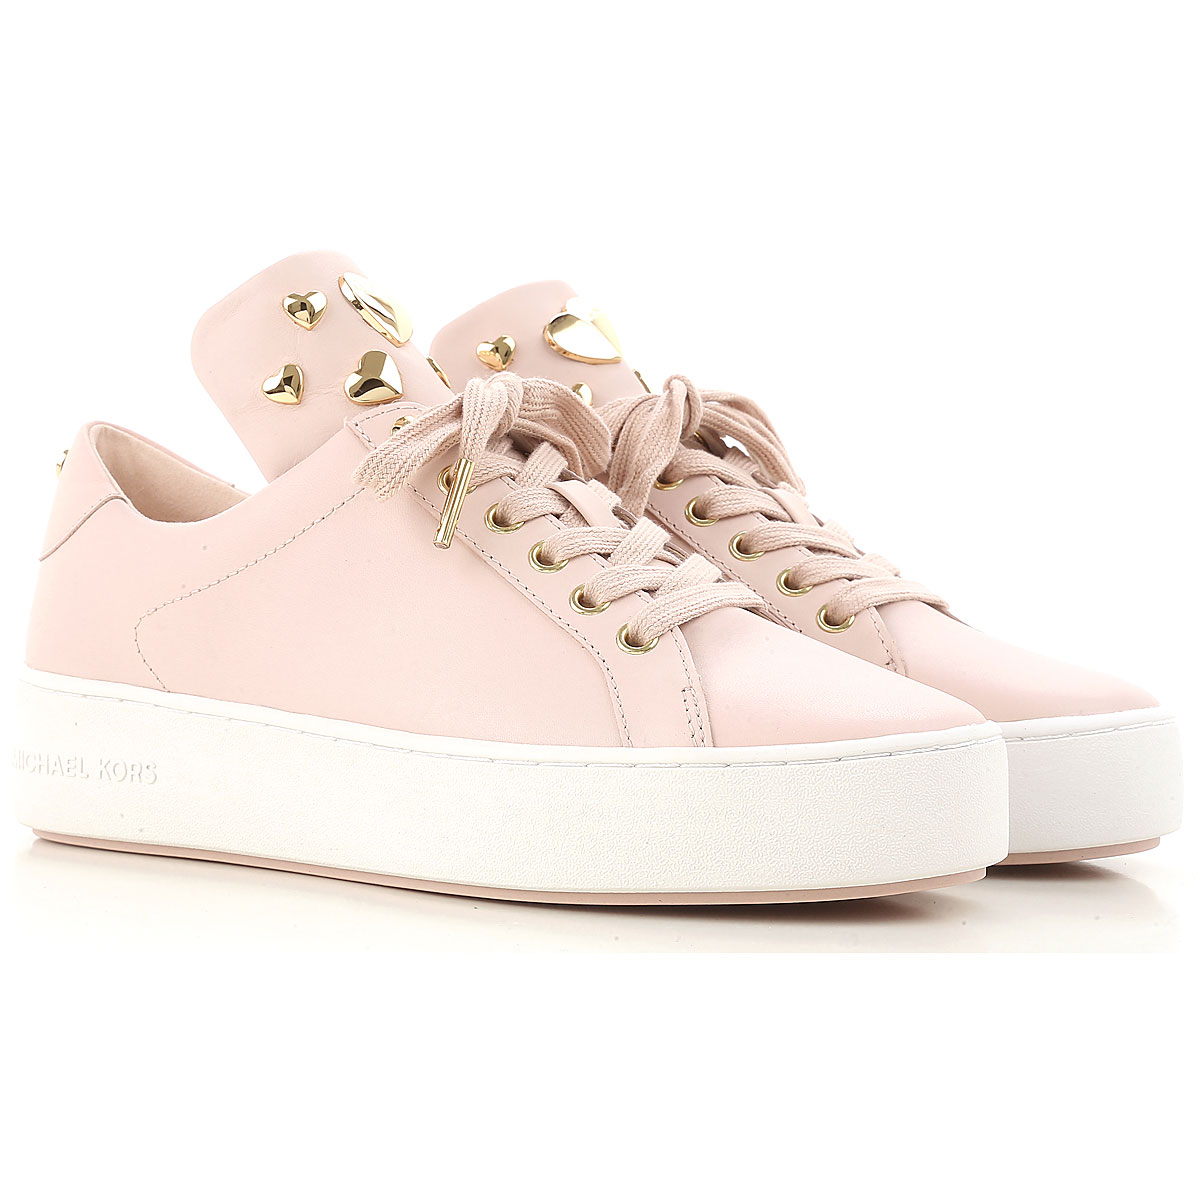 Michael Kors Sneakers for Women On Sale, soft pink, Leather, 2017, 3.5 4.5 5.5 6 7.5